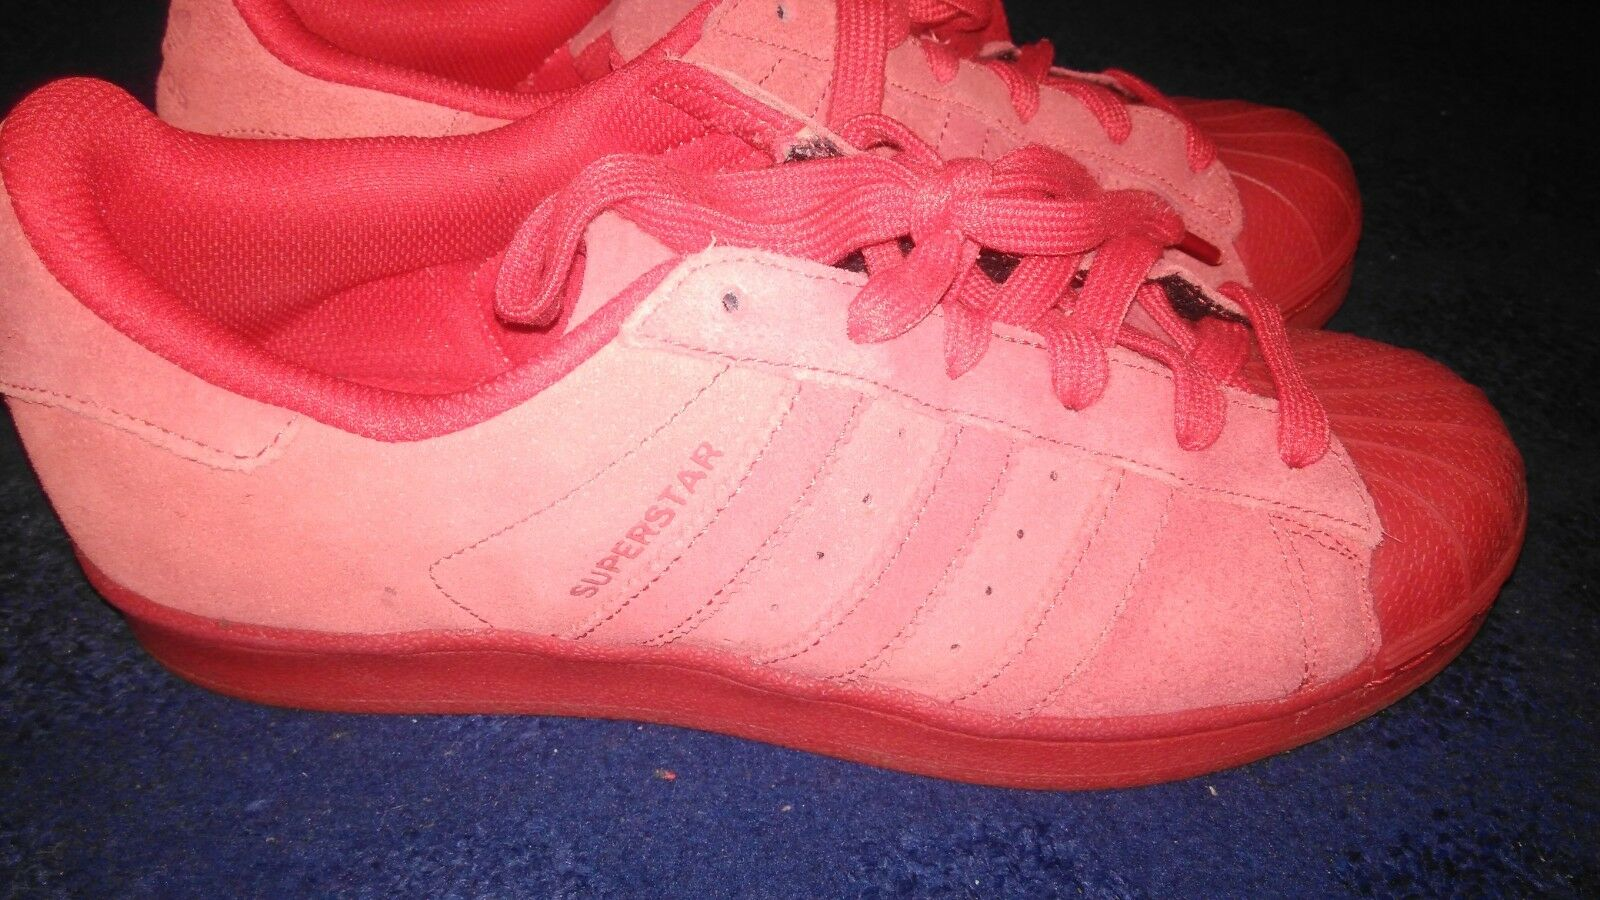 Adidas Red Superstar Men Trainer Size Uk 6 - Eur 39.5